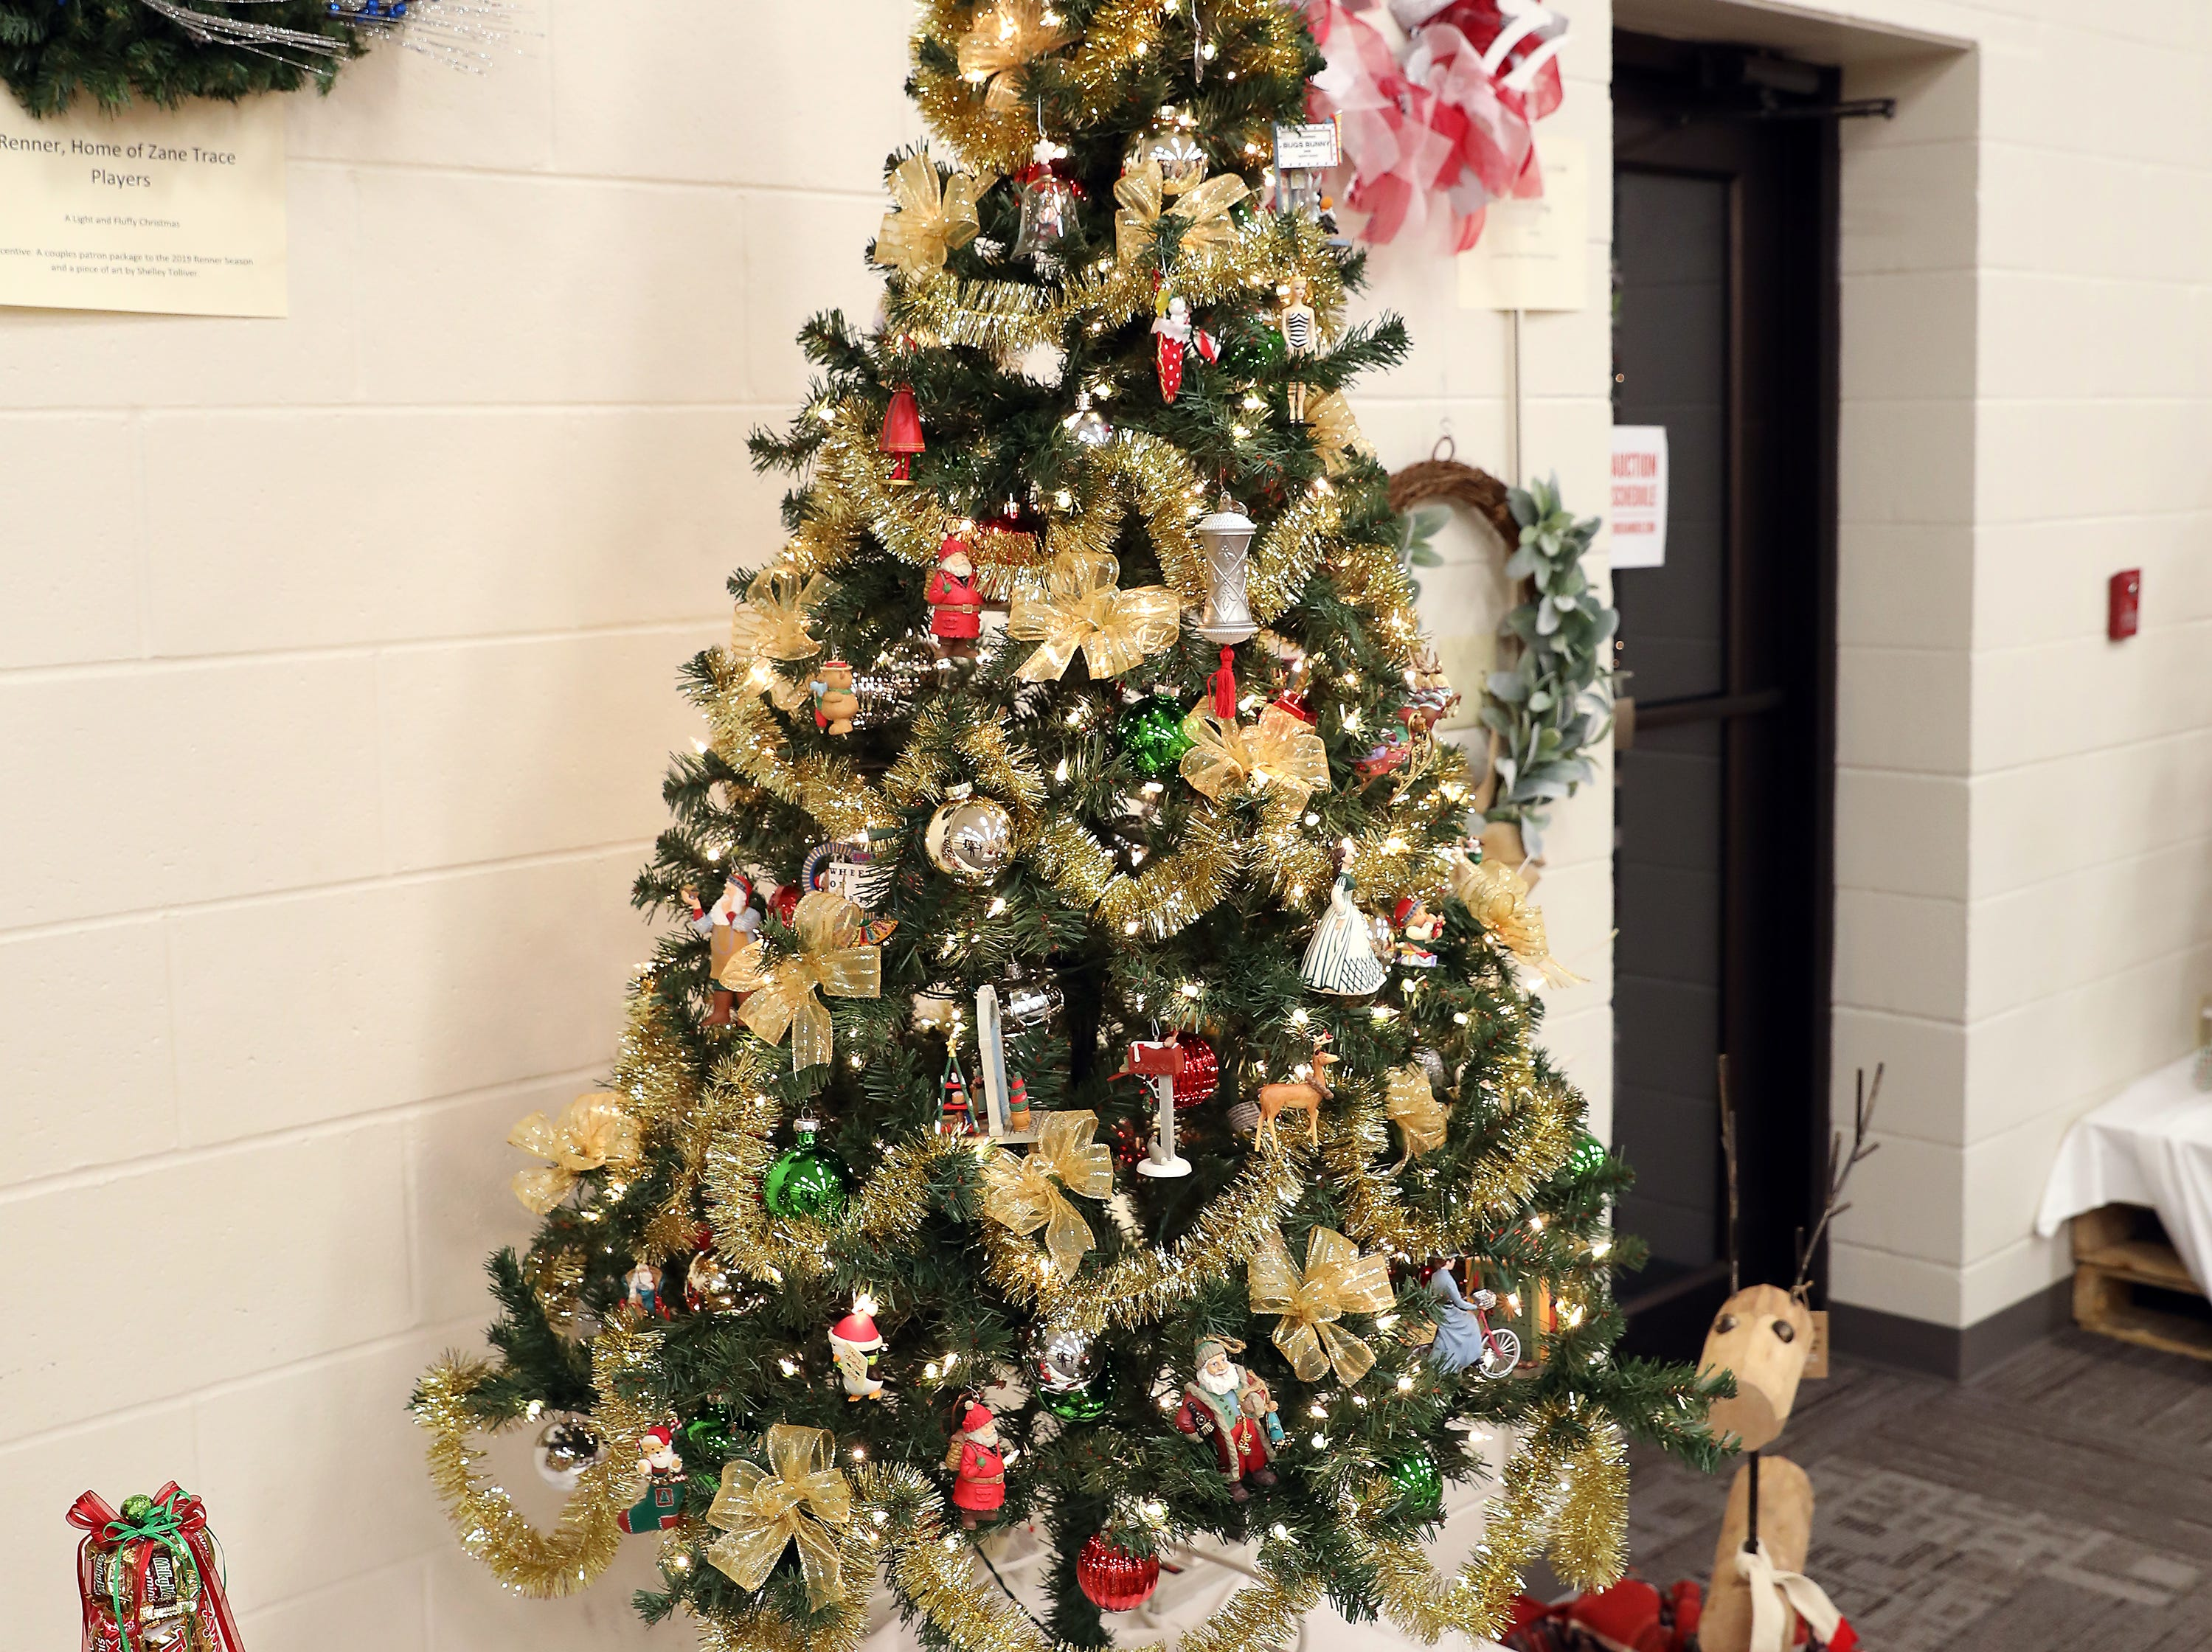 157	3:00 PM	Zanesville-Muskingum County Chamber of Commerce	Large Tree	A Hallmark Christmas	A large green tree decorated with Hallmark ornaments, green, red and gold accents.		Entry is incentive.